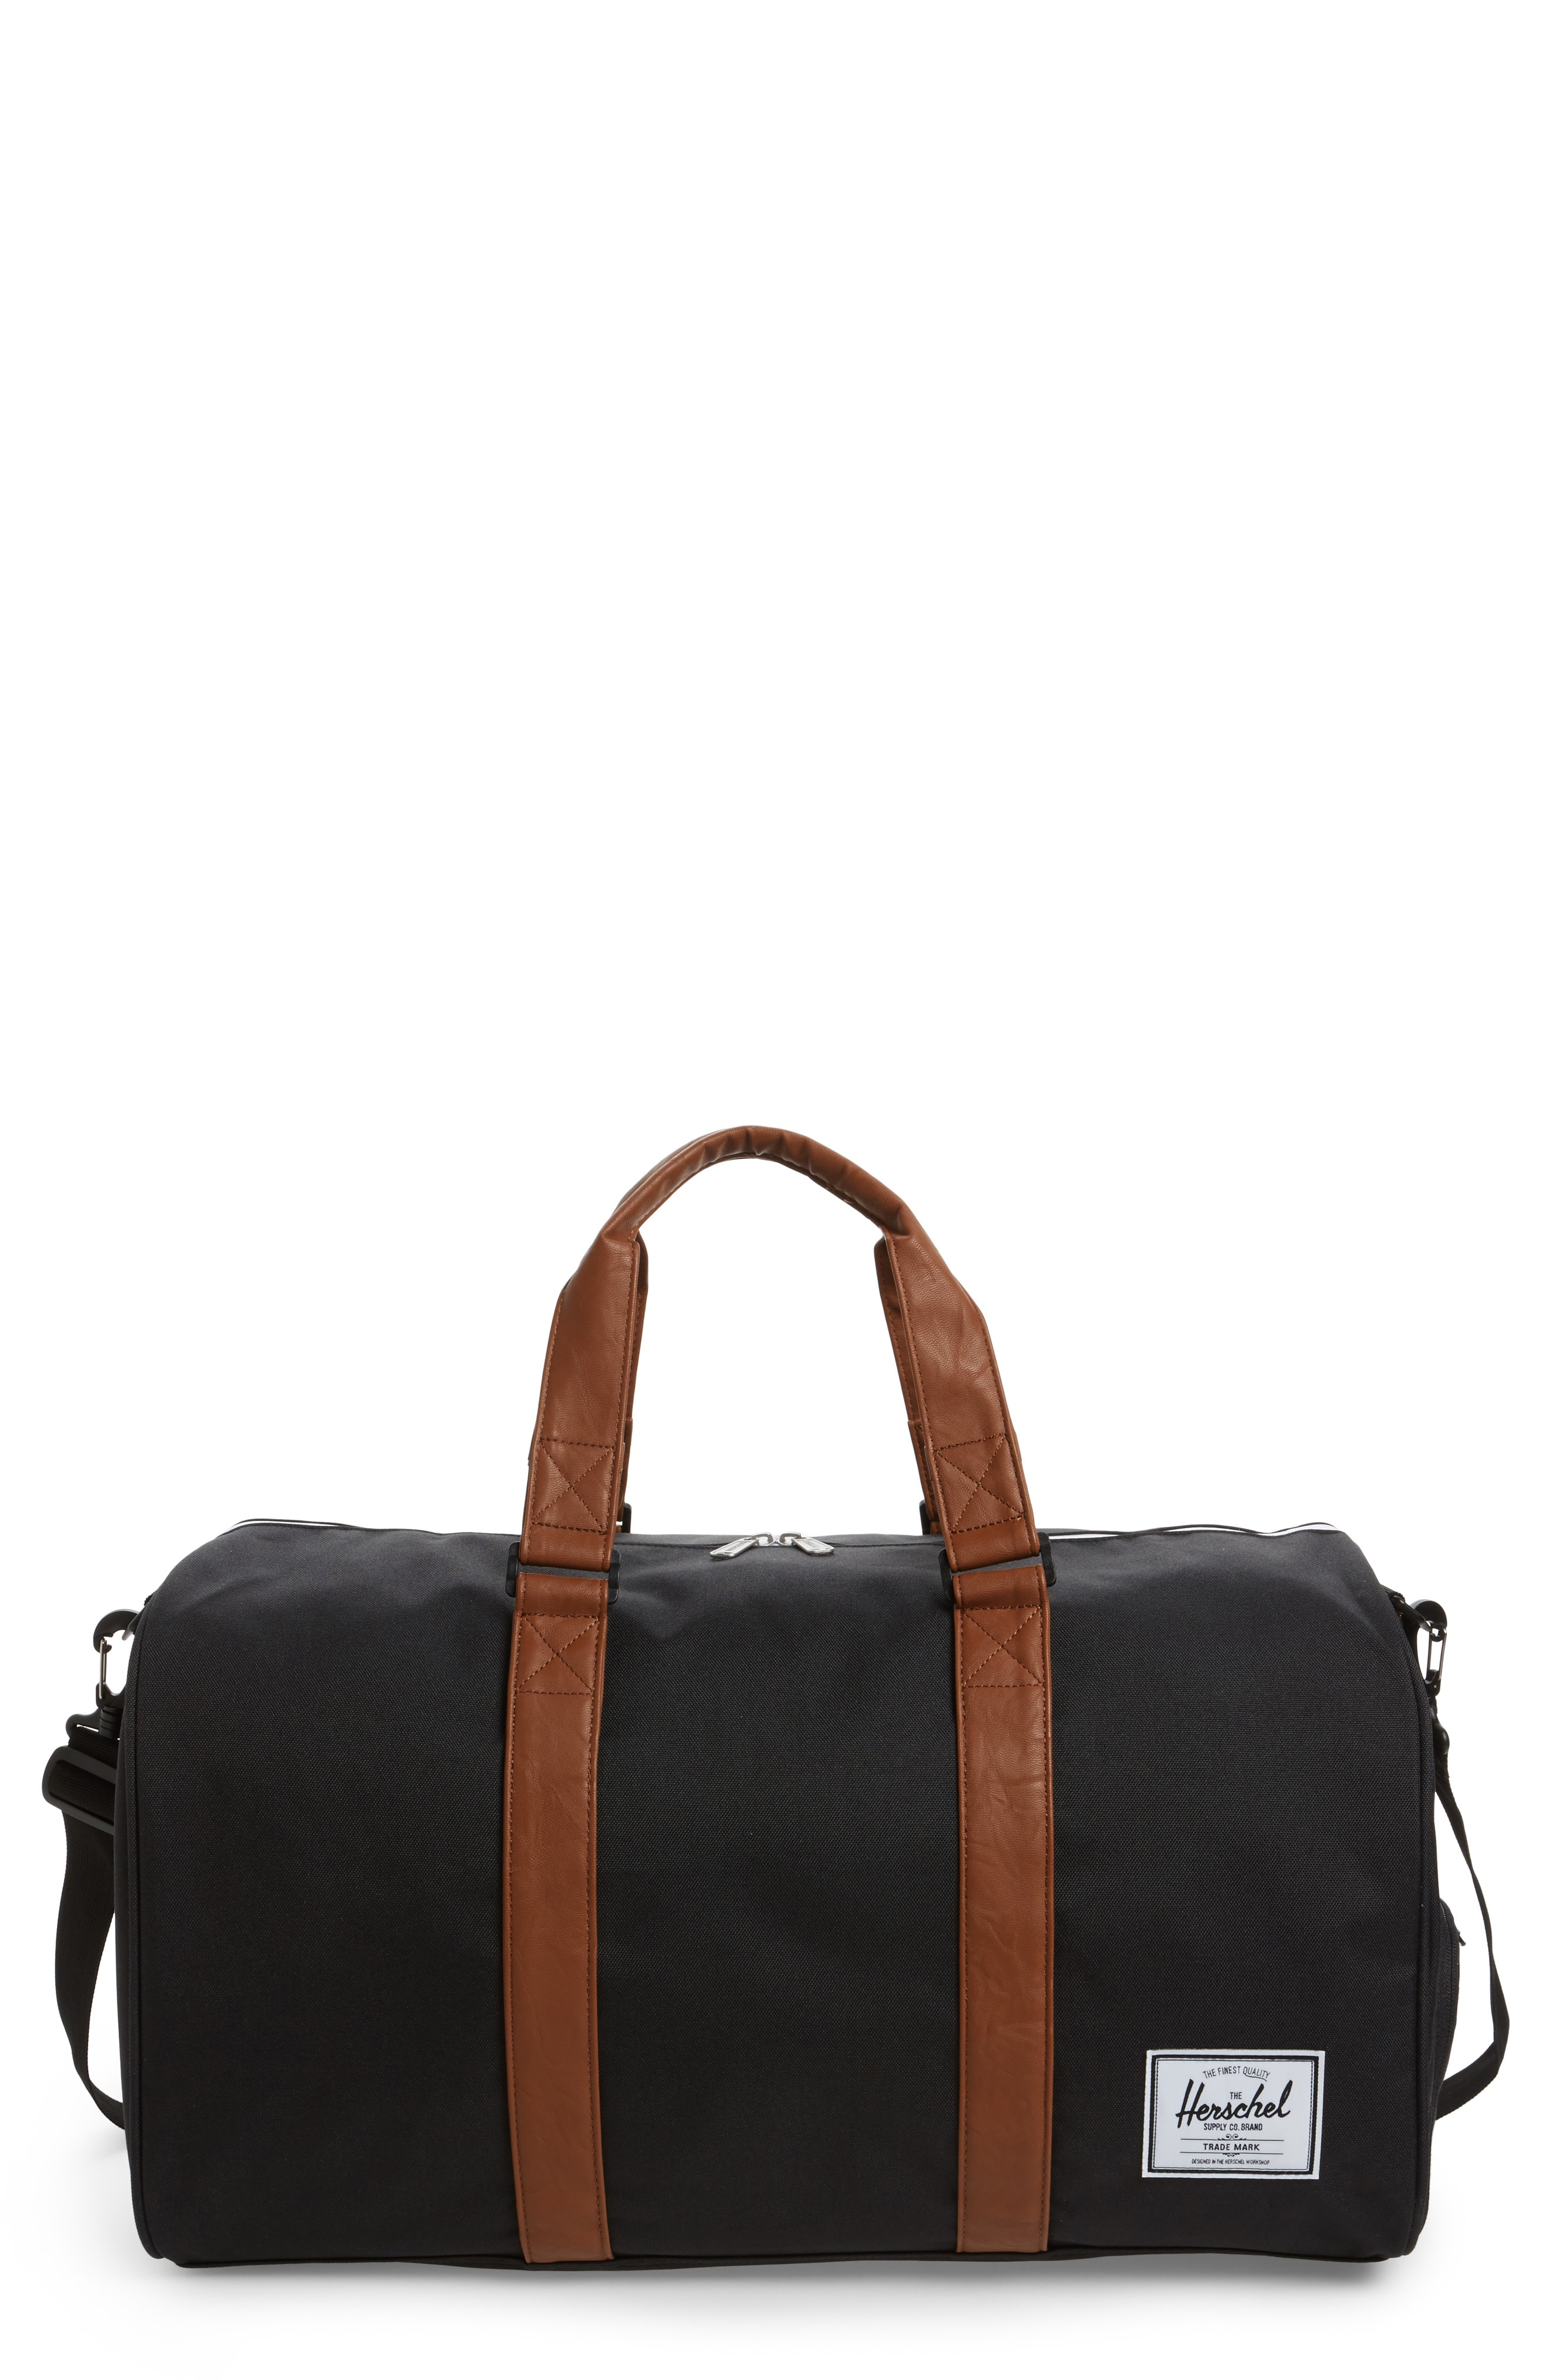 Men's Backpacks, Messenger Bags, Duffels and Briefcases | Nordstrom